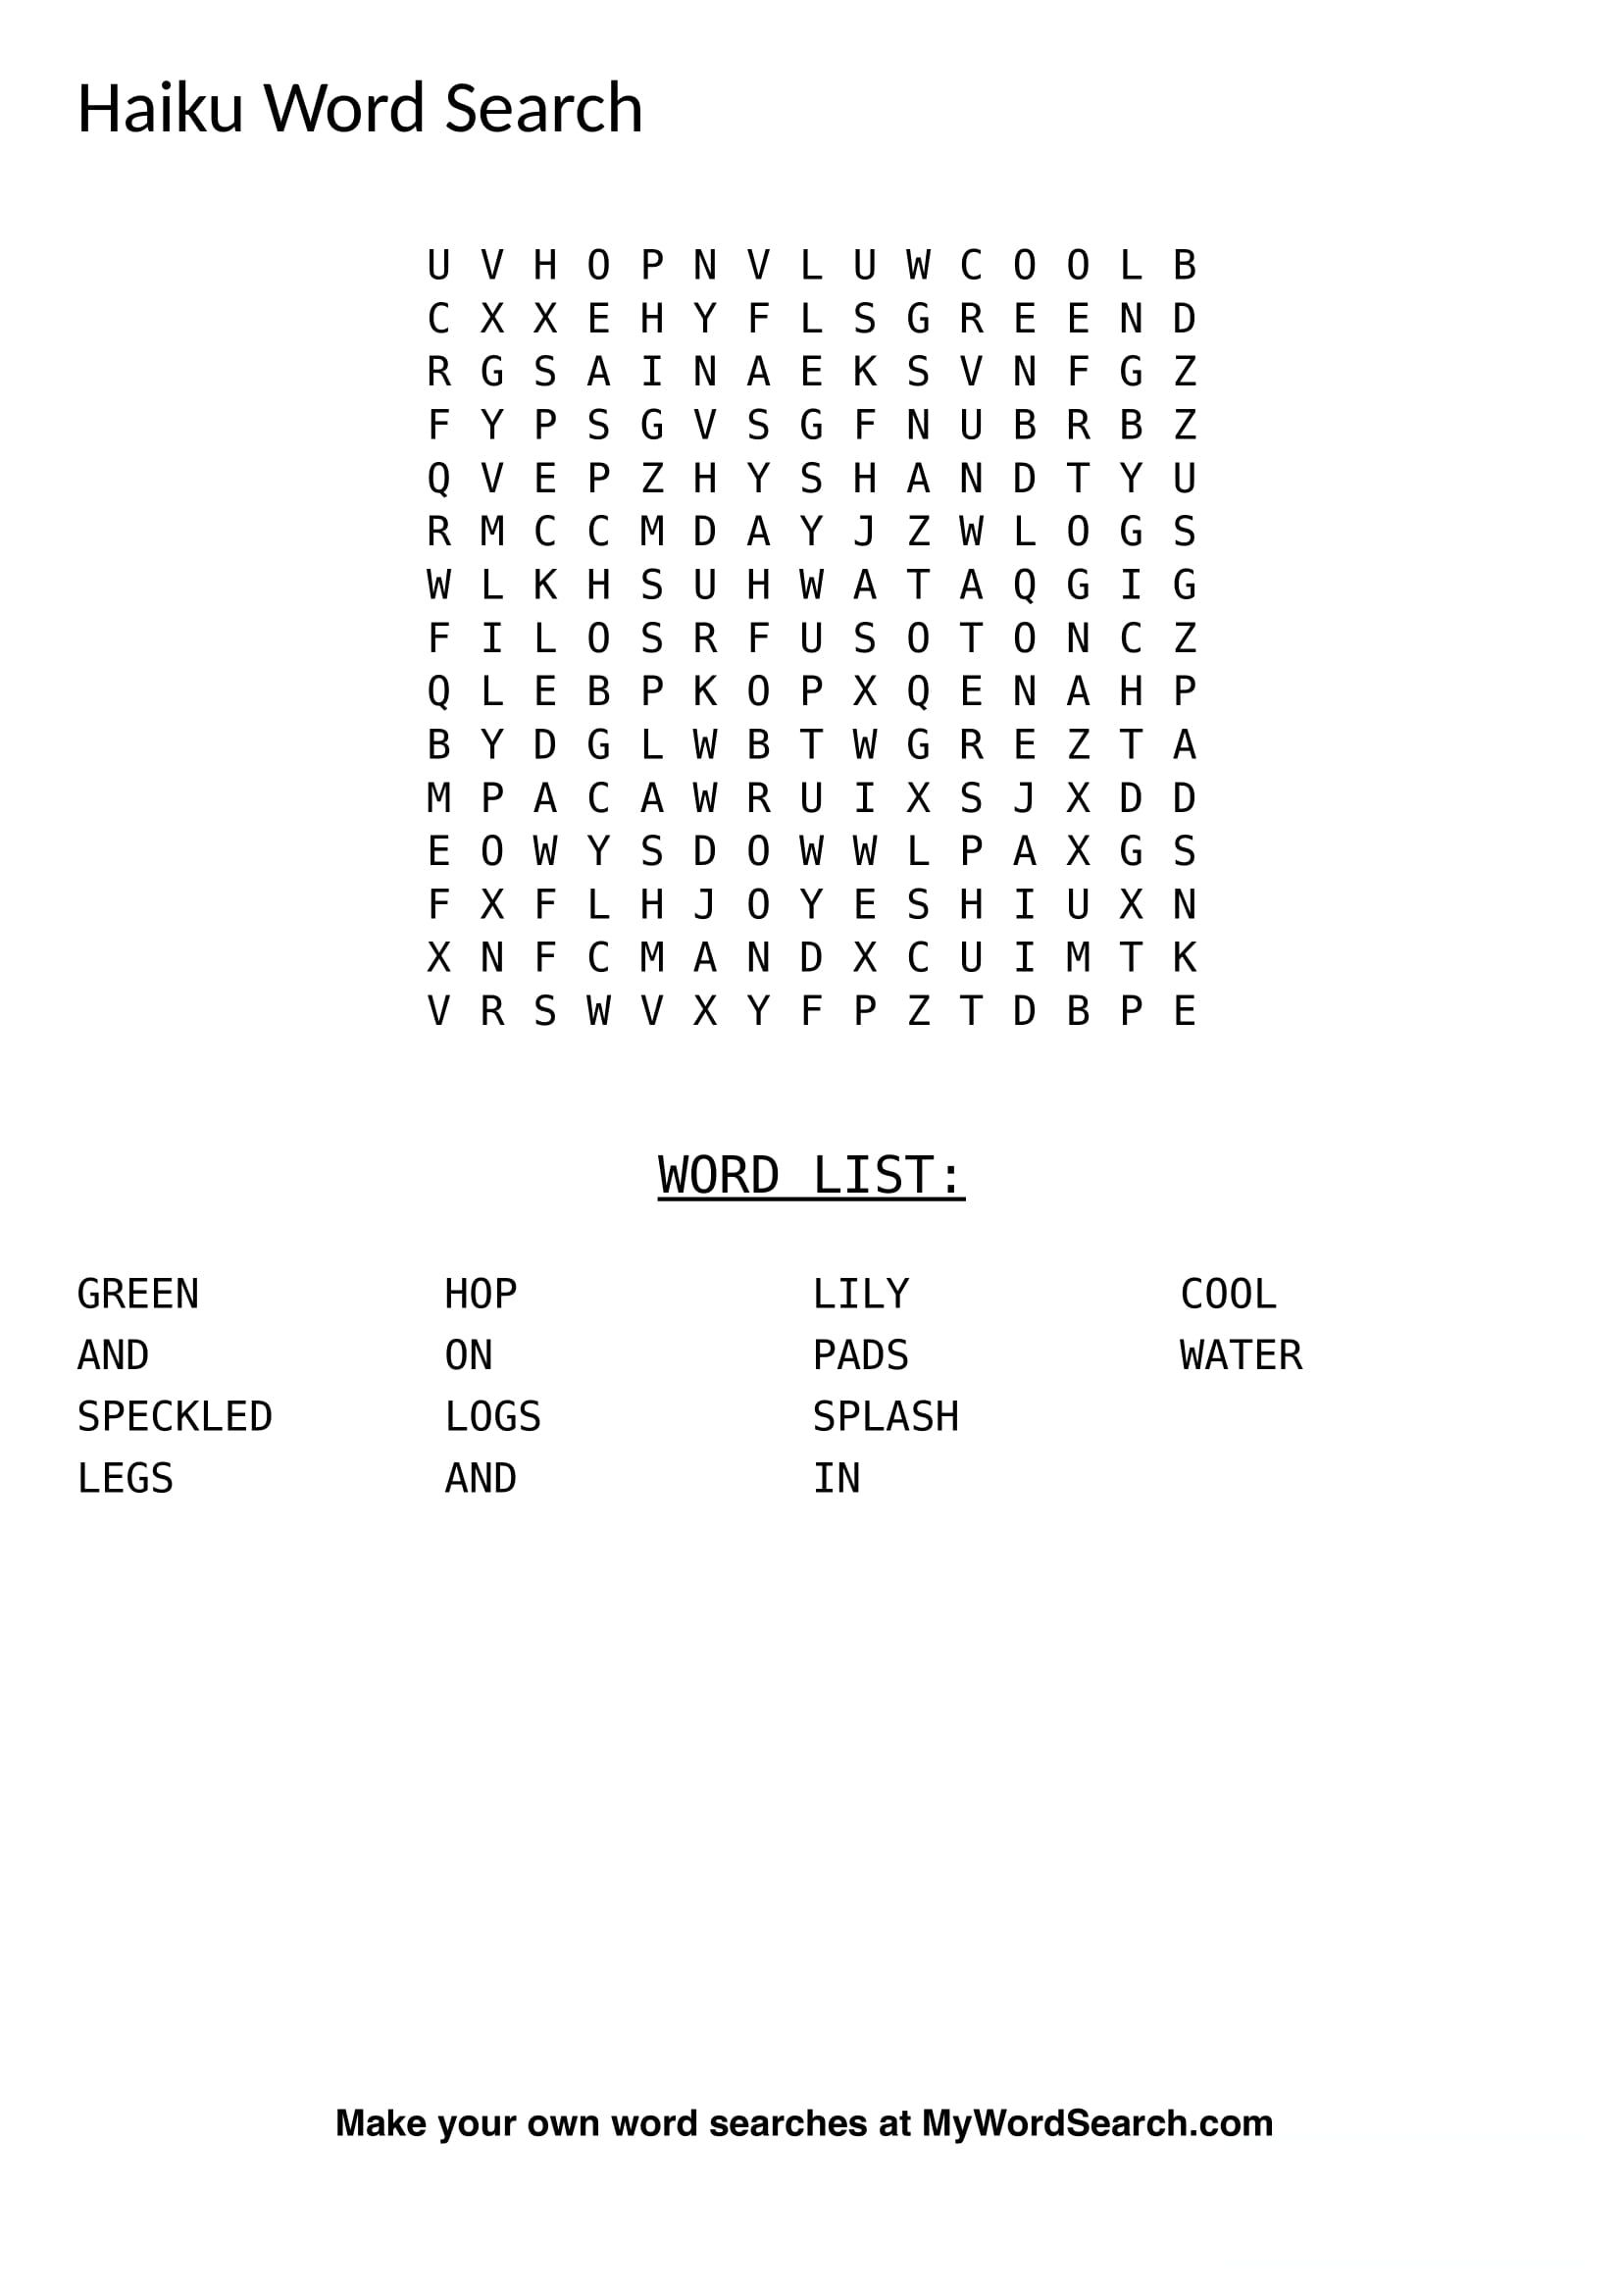 Make Your Own Haiku Word Searches Or Poetry Word Searches